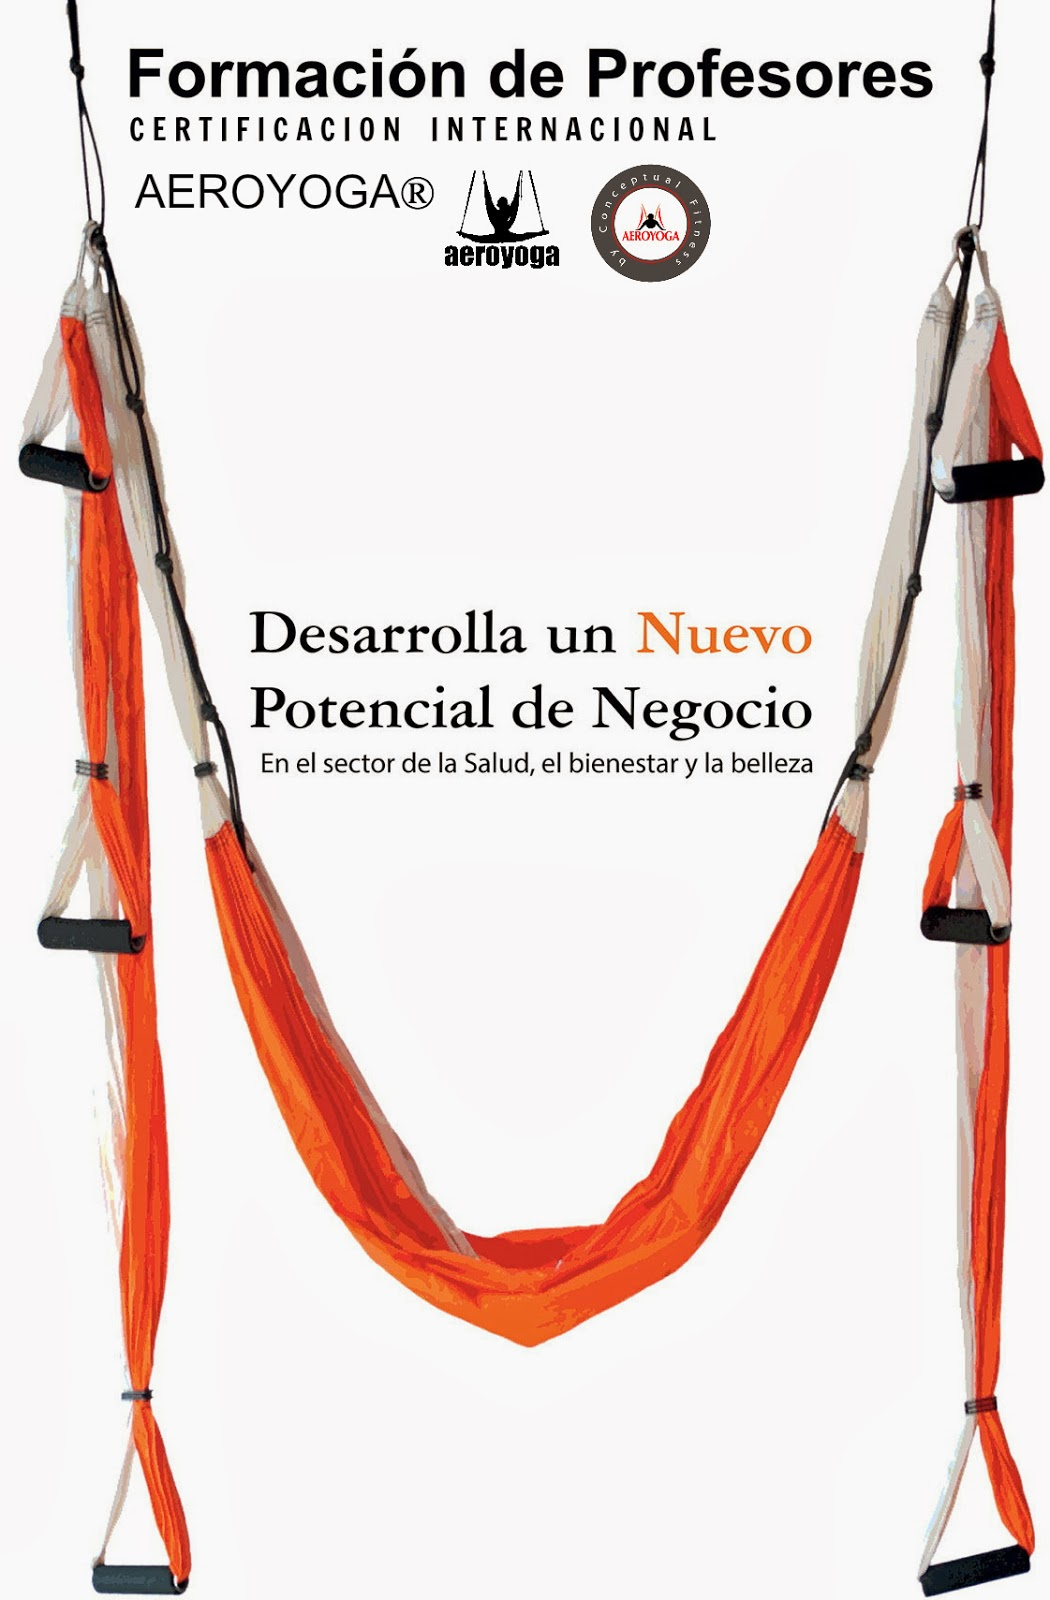 "Aerial Yoga: AeroYoga ® Institute uses the Aerial Yoga anti aging benefits for health* and well-being (wellness) for body and soul, of gems and stones (crystal healing ) applied to the original method AeroYoga ® and Aerial Yoga and the Aerial Fitness® the original methods of AeroYoga® Institute. Beneficios*  ·A nivel fisico puede ser anti inflamatorio y mejorar el aparato respiratorio.  ·A a nivel psicológico puede ayudar a relajar mente y estabilizar emociones.   ·A nivel energético la amatista y el cuarzo blanco son conocidas por ""absover las malas vibraciones"", propias o del entorno.   ·A nivel estético ayudan a paliar el edema (ojeras) y difuminar los puntos de tensión facial y las marcadas líneas de expresión.   RAFAEl MARTINEZ .  La litoterapia forma parte integral del método registrado AeroYoga y Yoga Facial SCULPTOR.  Siguenos en Instagram: AeroYoga® en Instagram, clic aquí  Sigue leyendo aquí mas sobre la Litoterapia aplicada al Yoga Aéreo:http://yogacreativo.blogspot.com.es/2008/03/taller-yoga-con-piedras-calientes.html#"